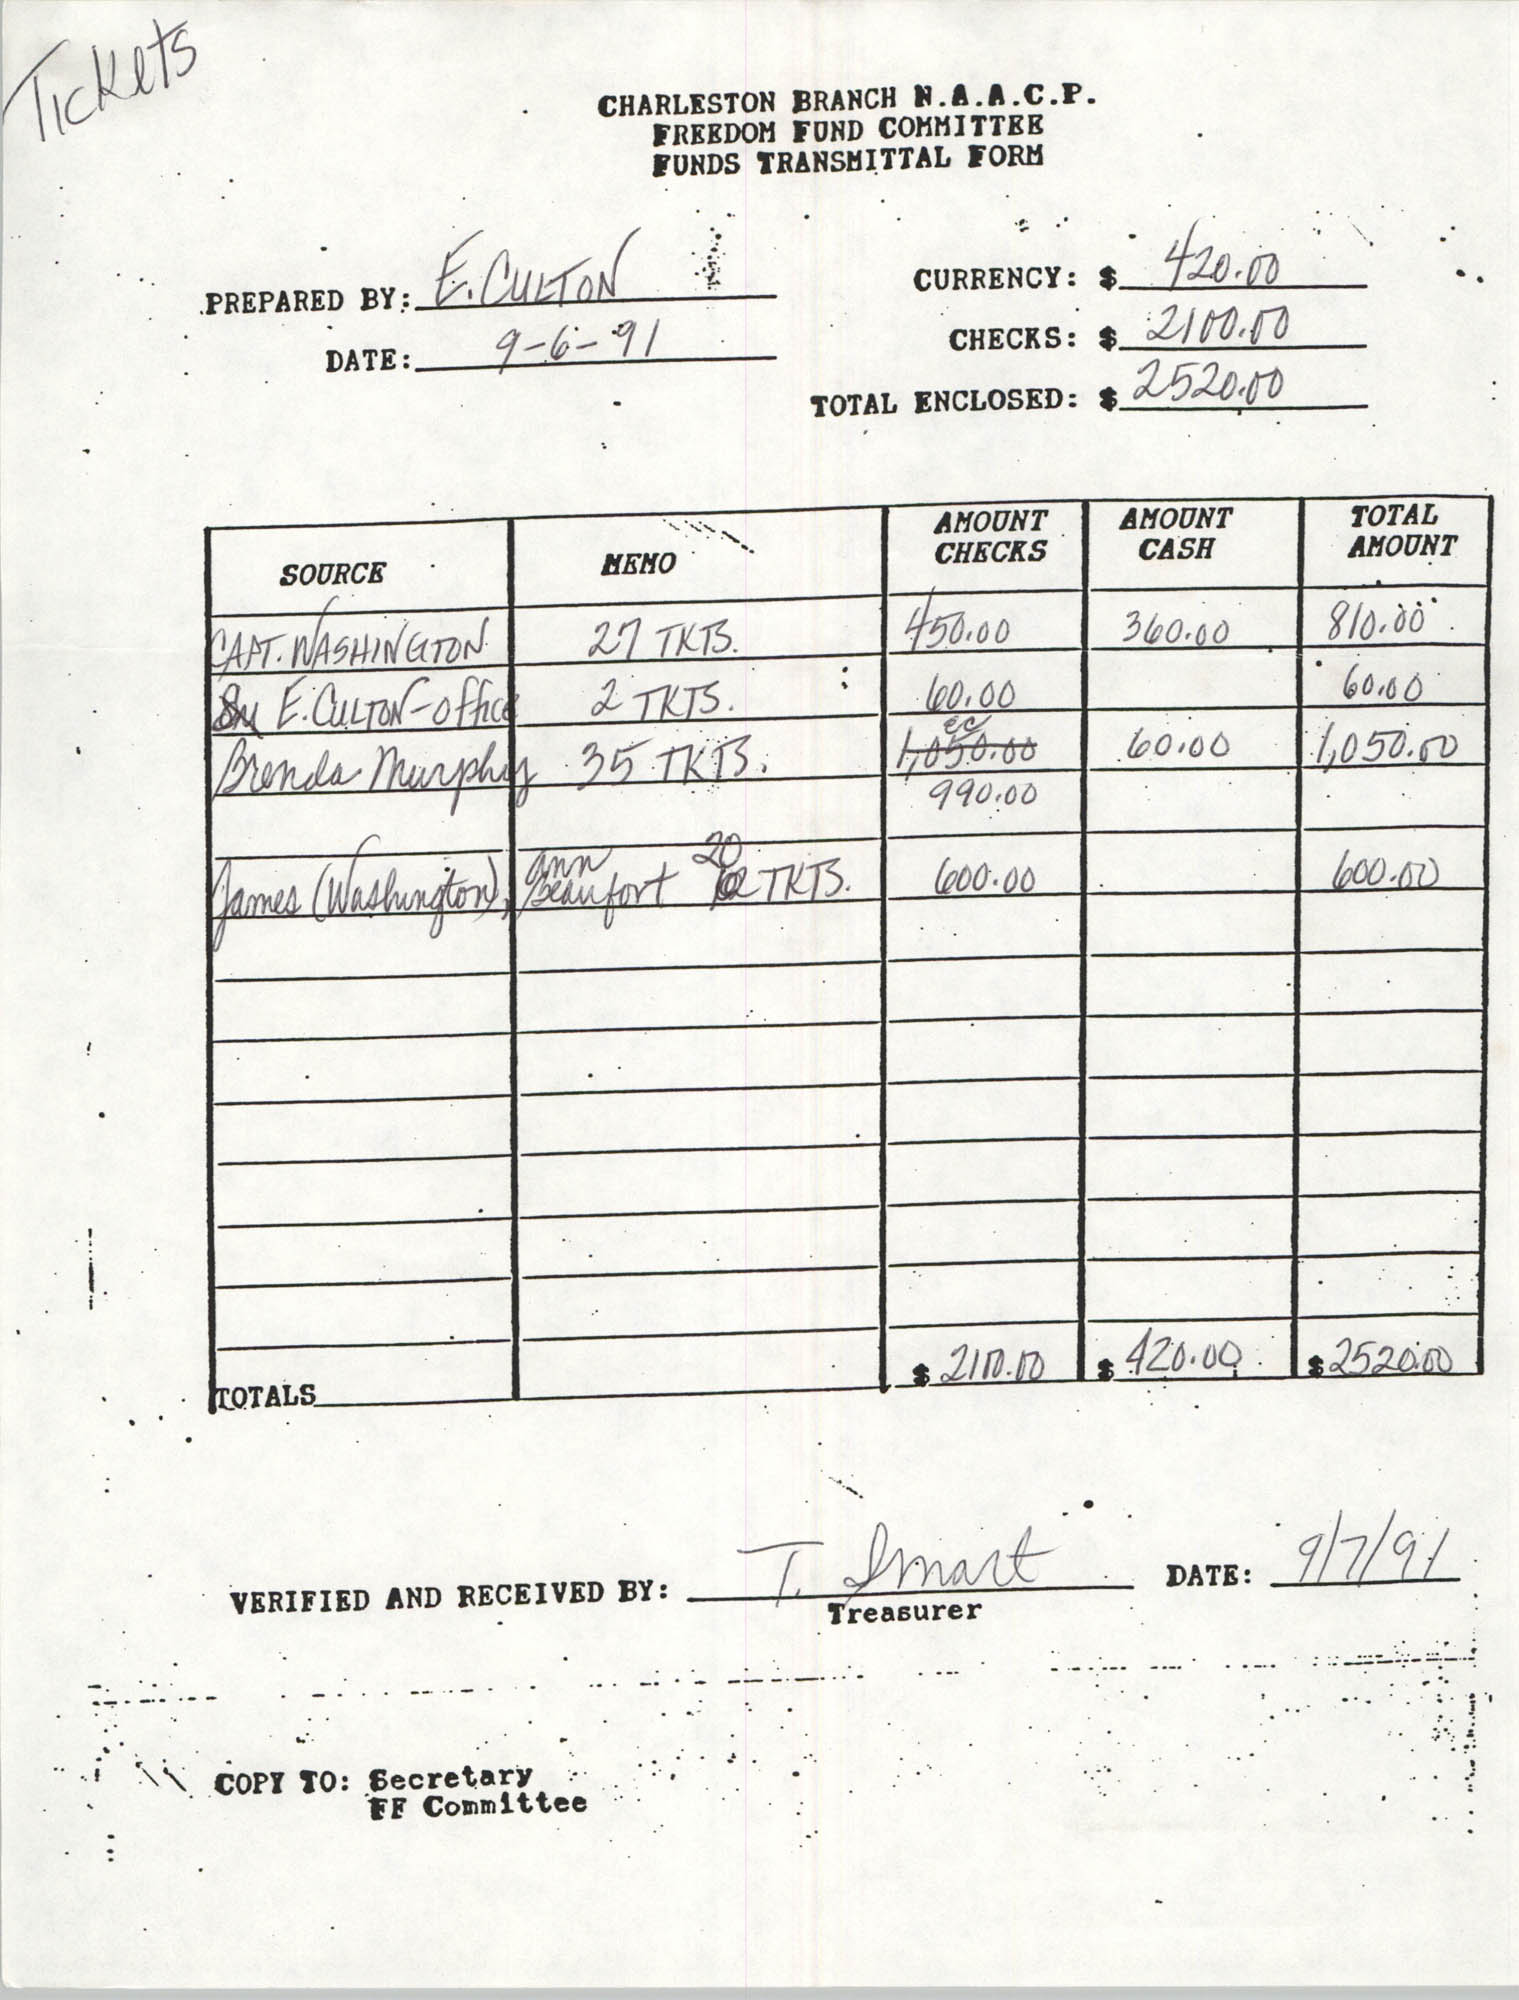 Charleston Branch of the NAACP Funds Transmittal Forms, September 1991, Page 14